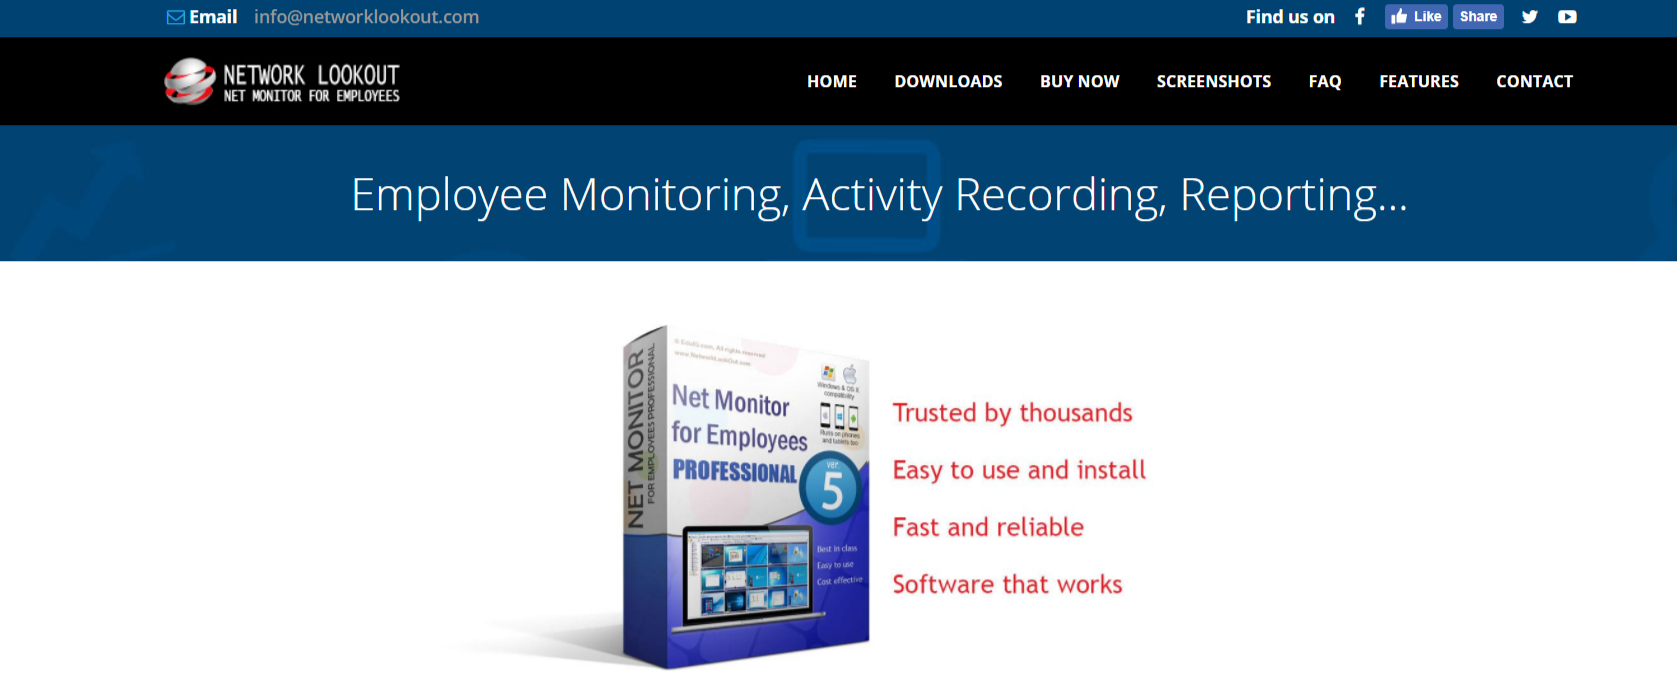 Net Monitor for Employees- Monitoring Tool